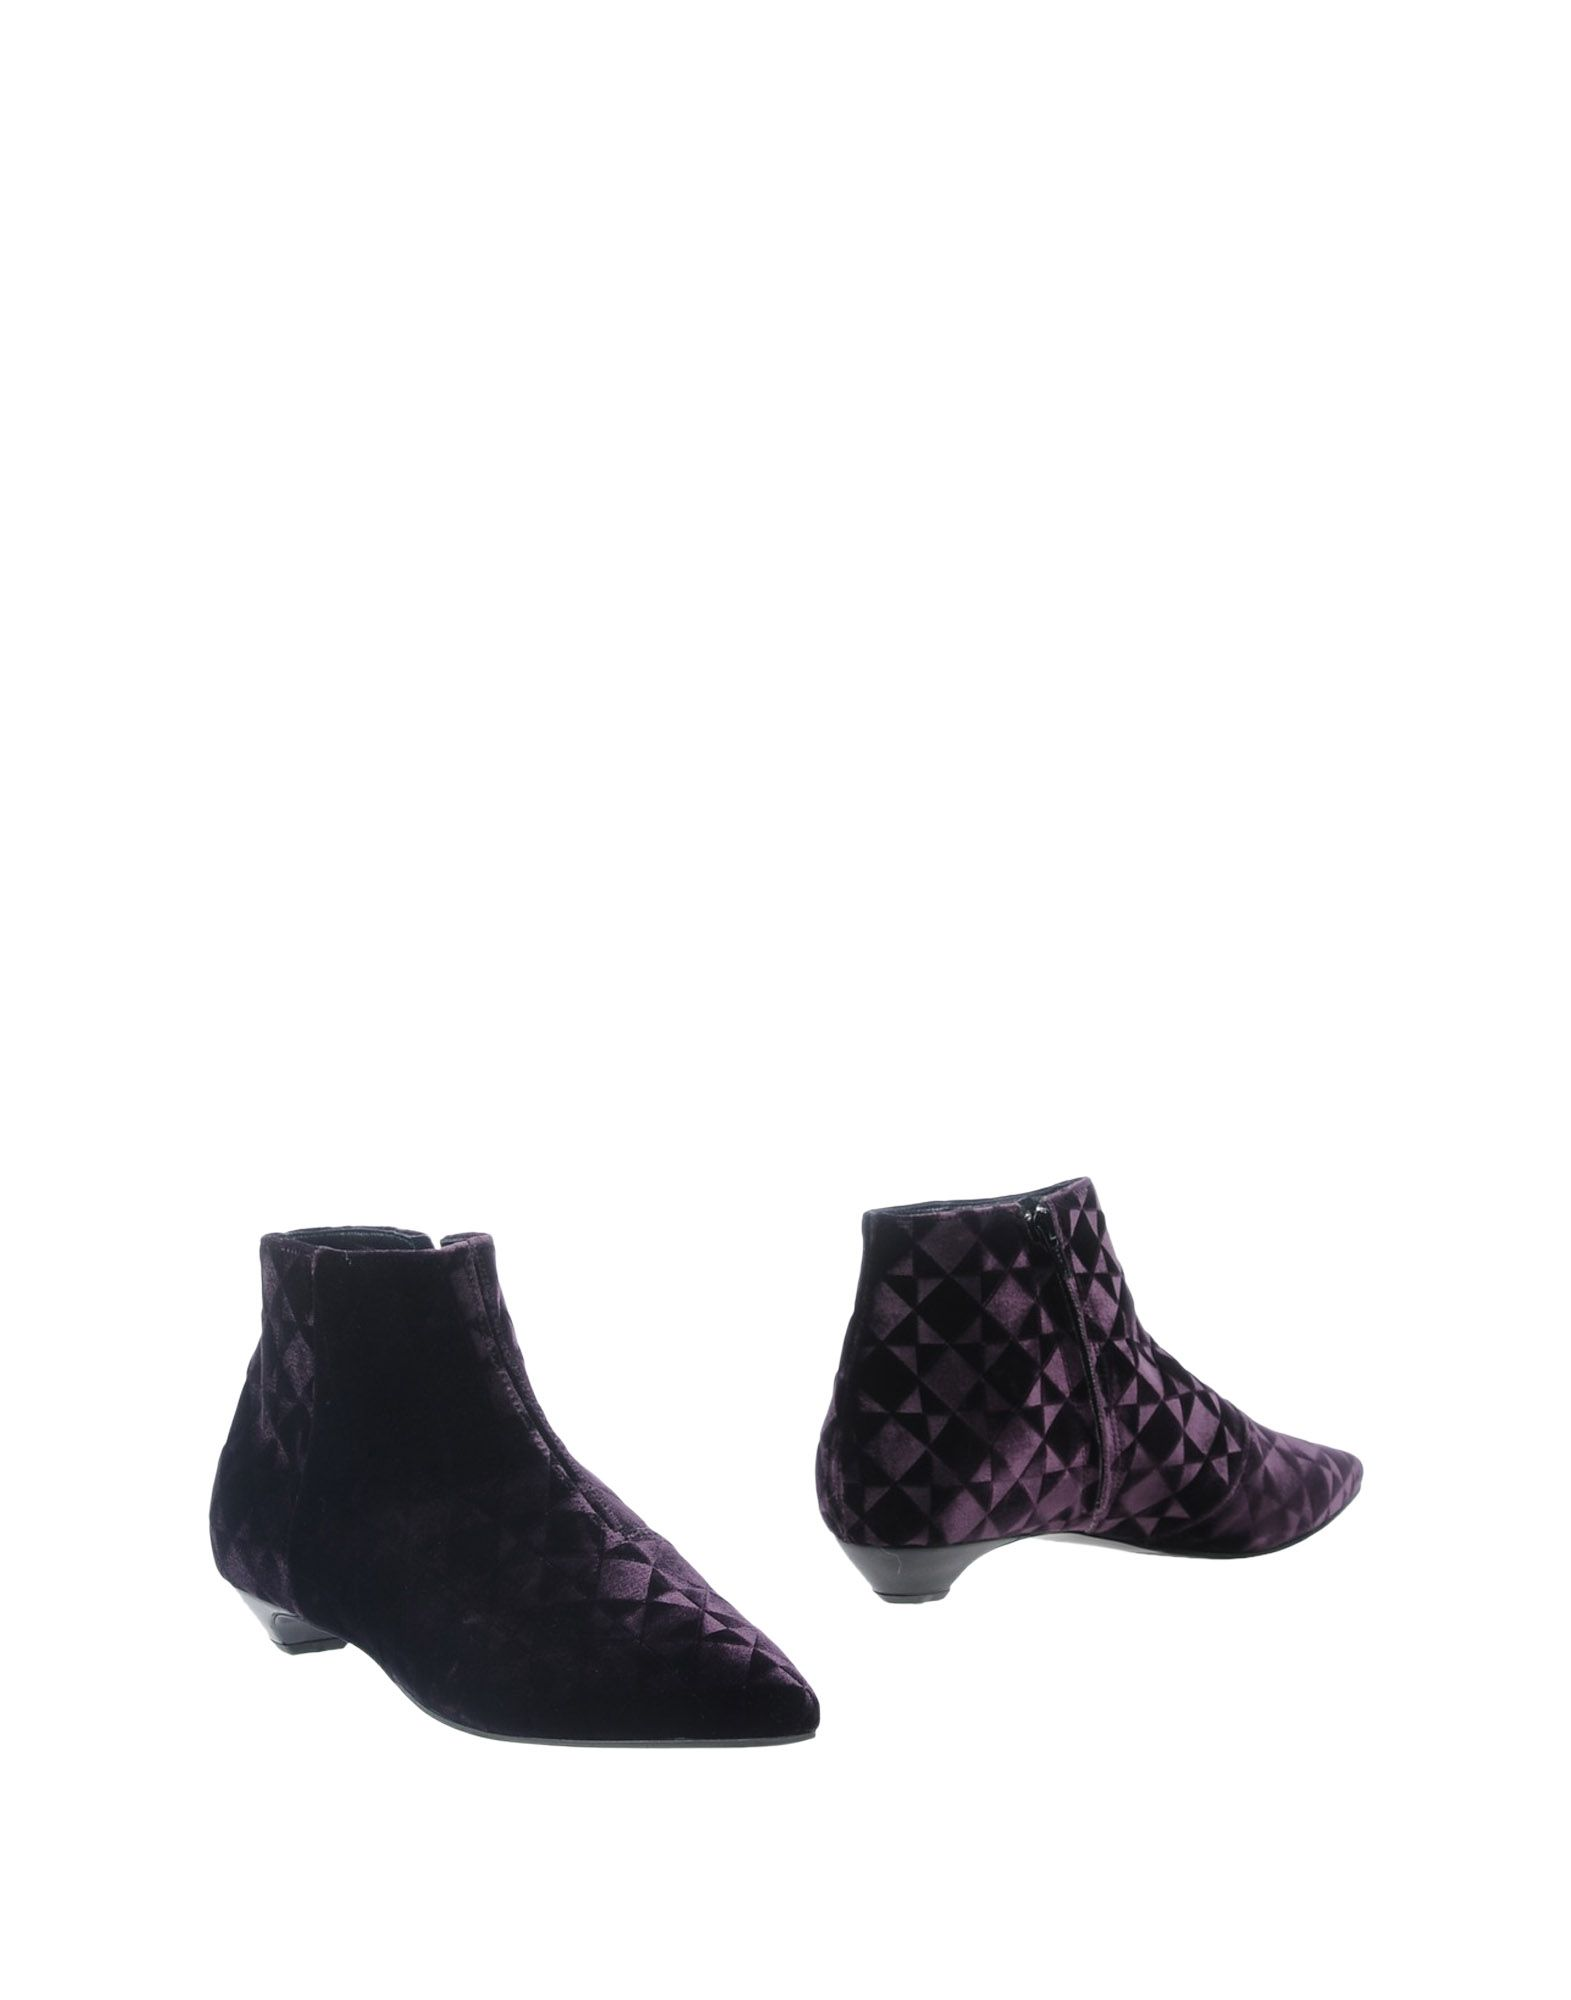 Vic Ankle Ankle Boot - Women Vic Ankle Ankle Boots online on  Canada - 11337332WA 7c5e04